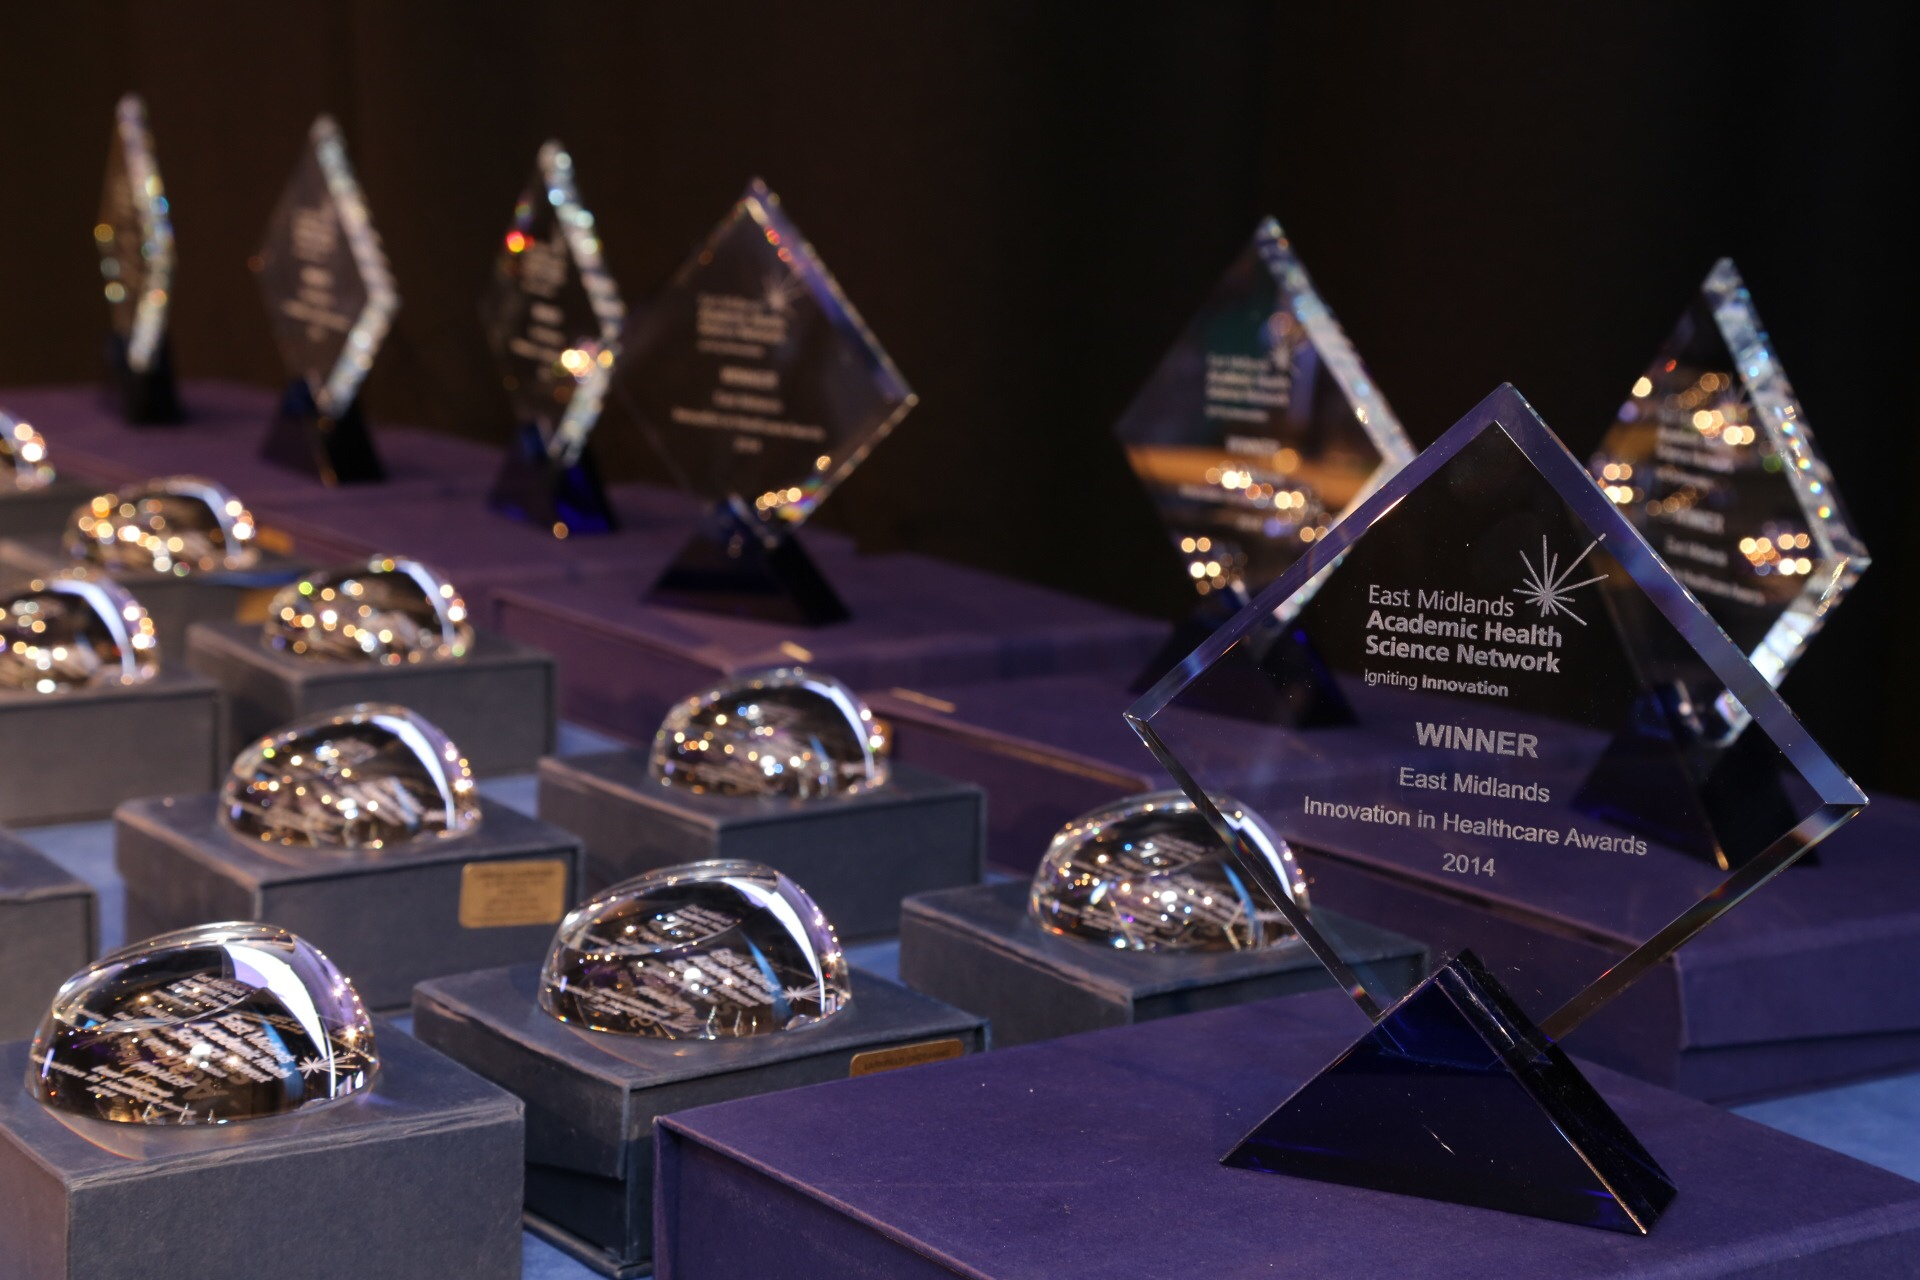 Trophies from EMAHSN Innovation in Health Awards